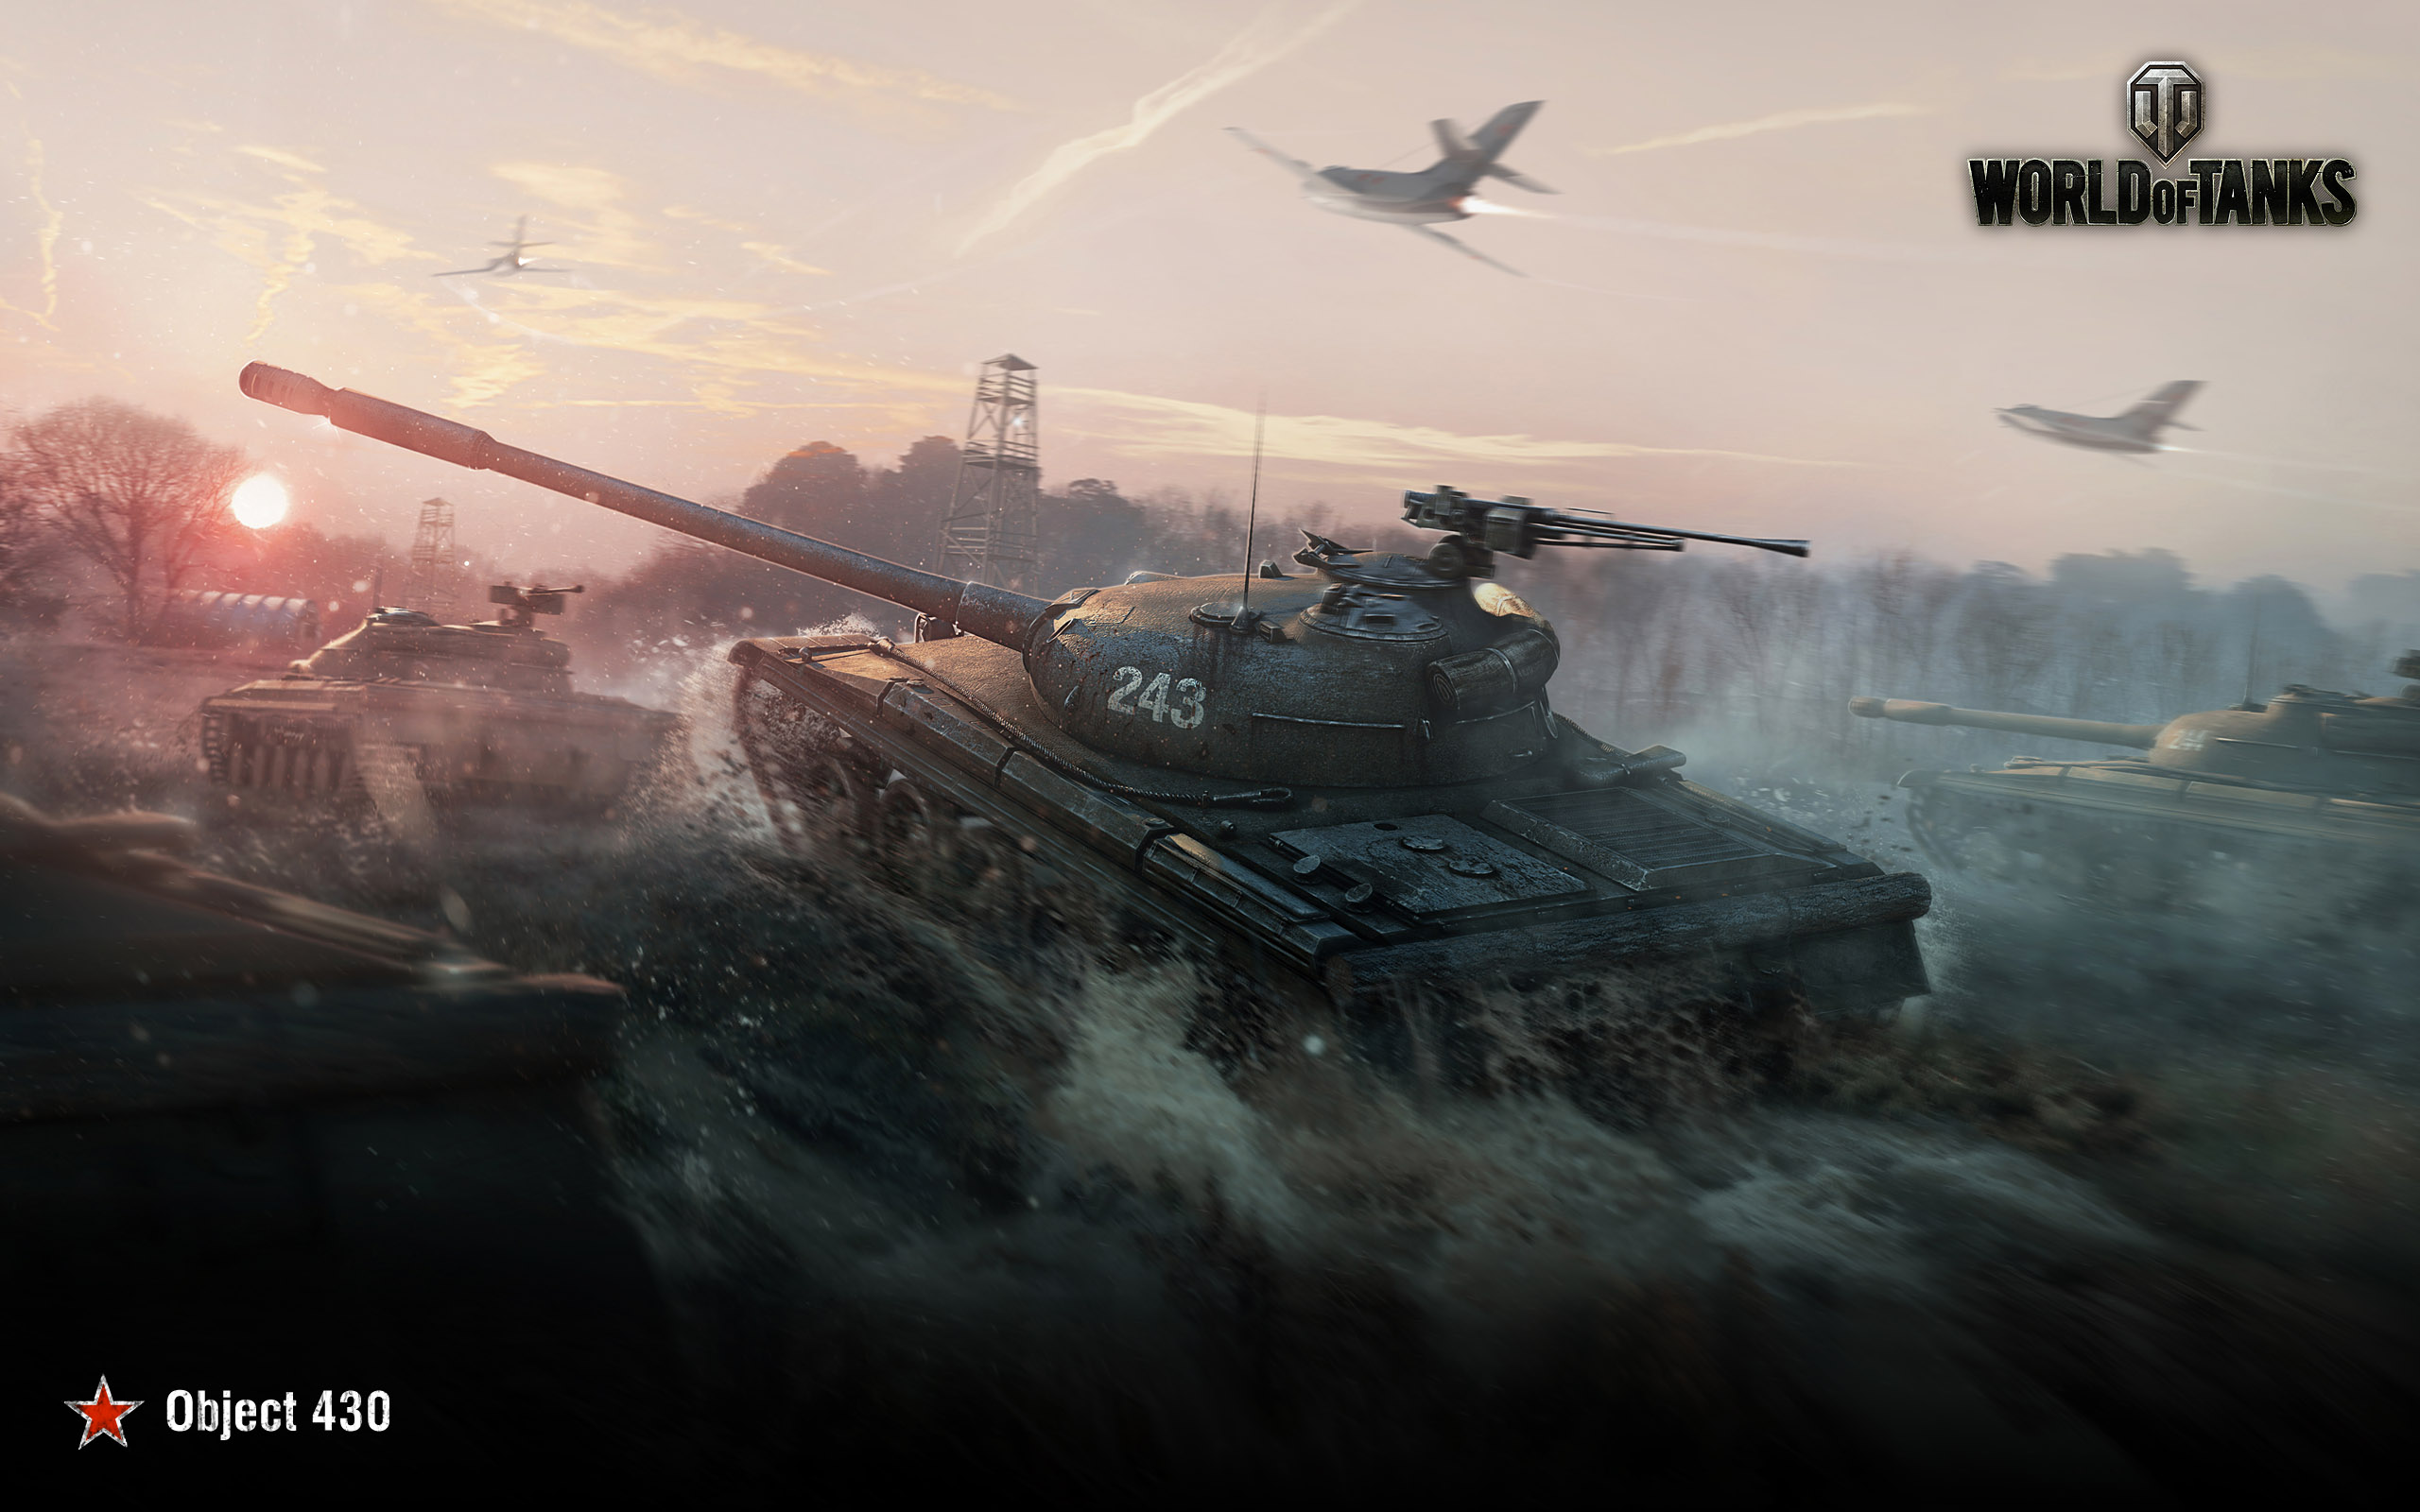 world of tanks obj 430, hd games, 4k wallpapers, images, backgrounds